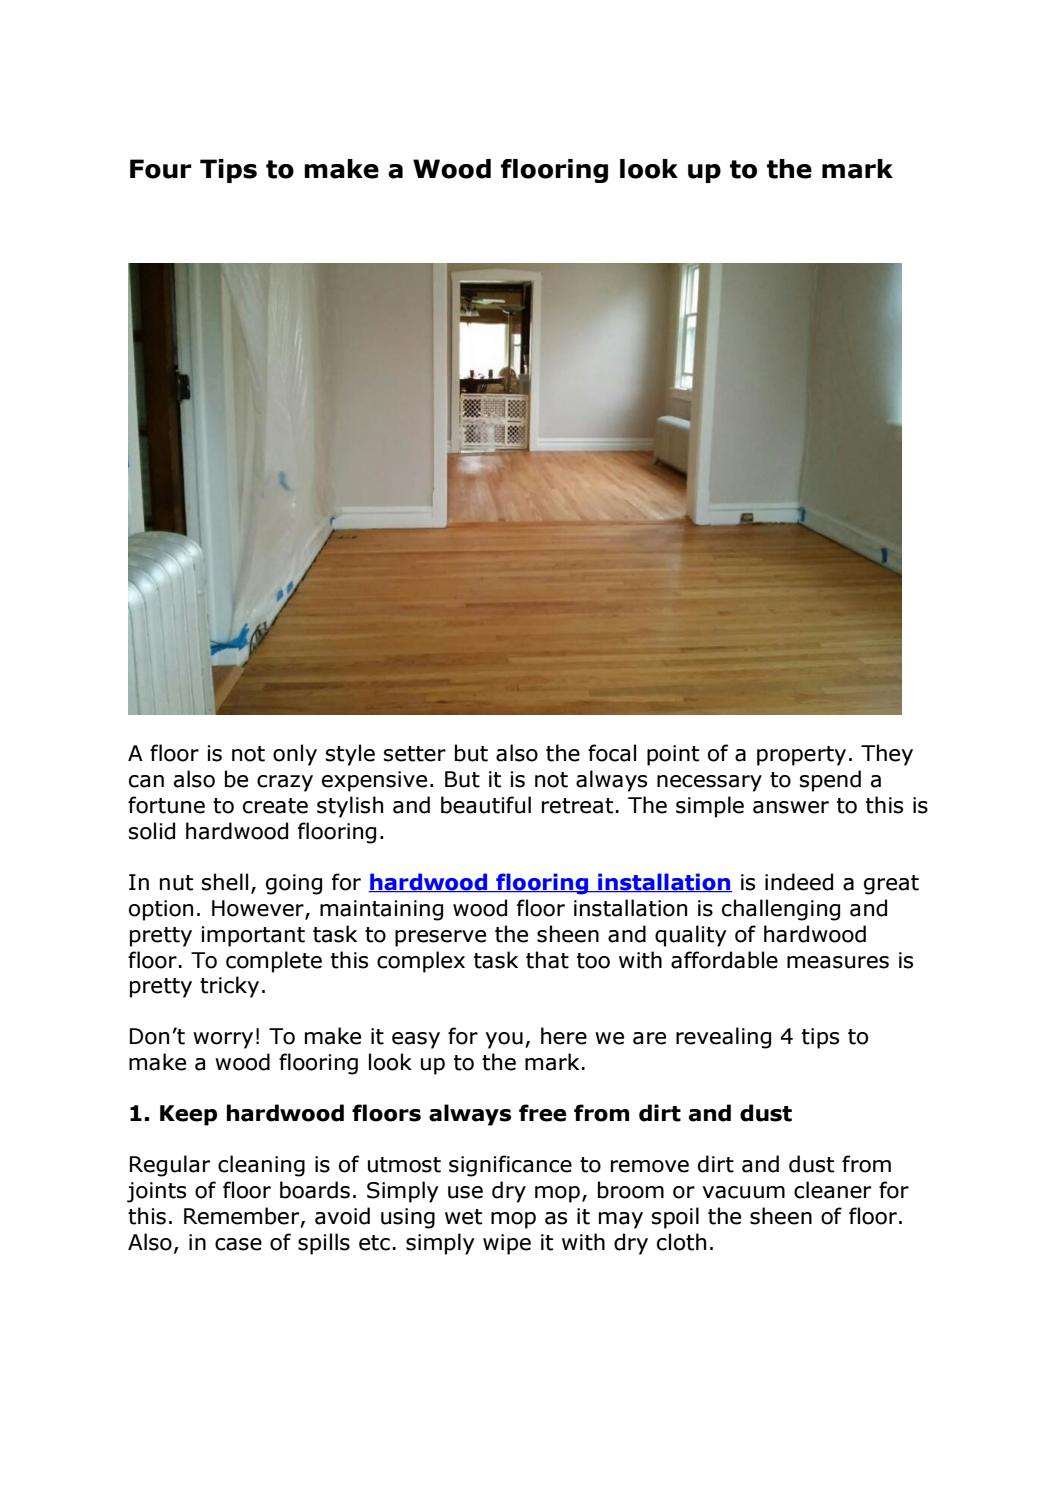 Four Tips To Make A Wood Flooring Look